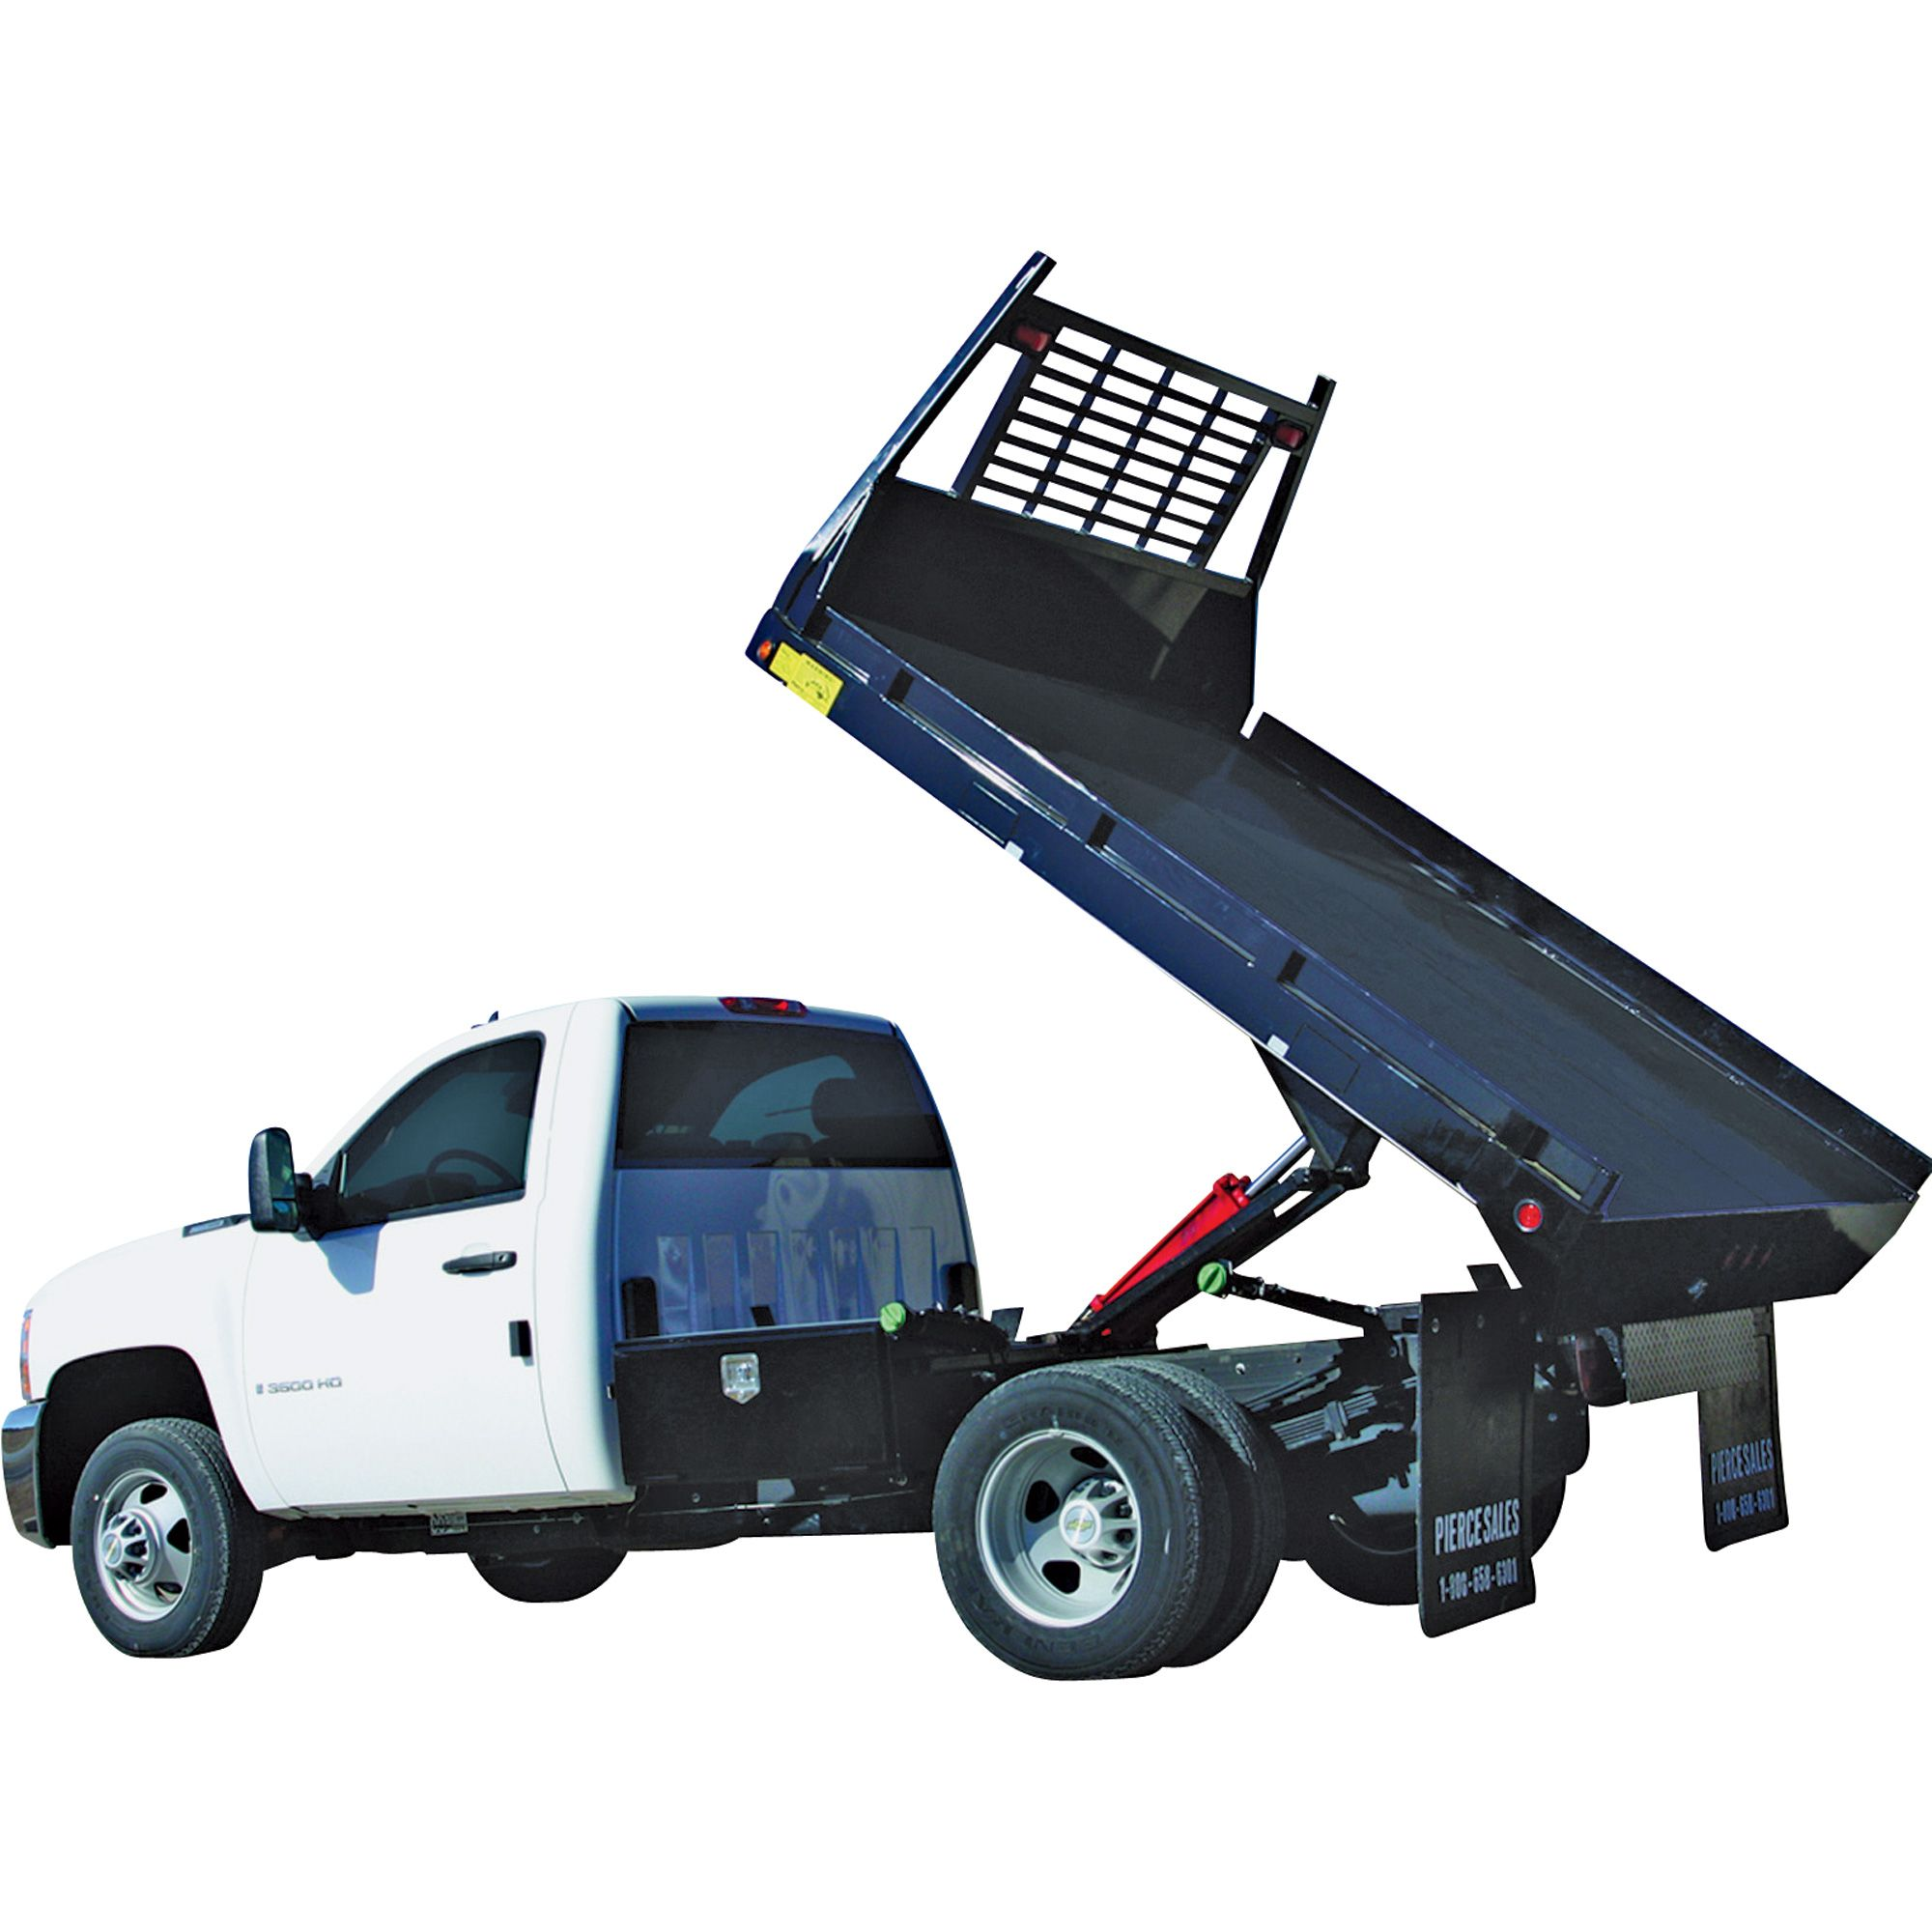 Pierce Arrow Flatbed Truck Hoist Kit 7 5 Ton Capacity 8ft To 12ft Flatbed Lifted Trucks Pickup Trucks Jacked Up Trucks